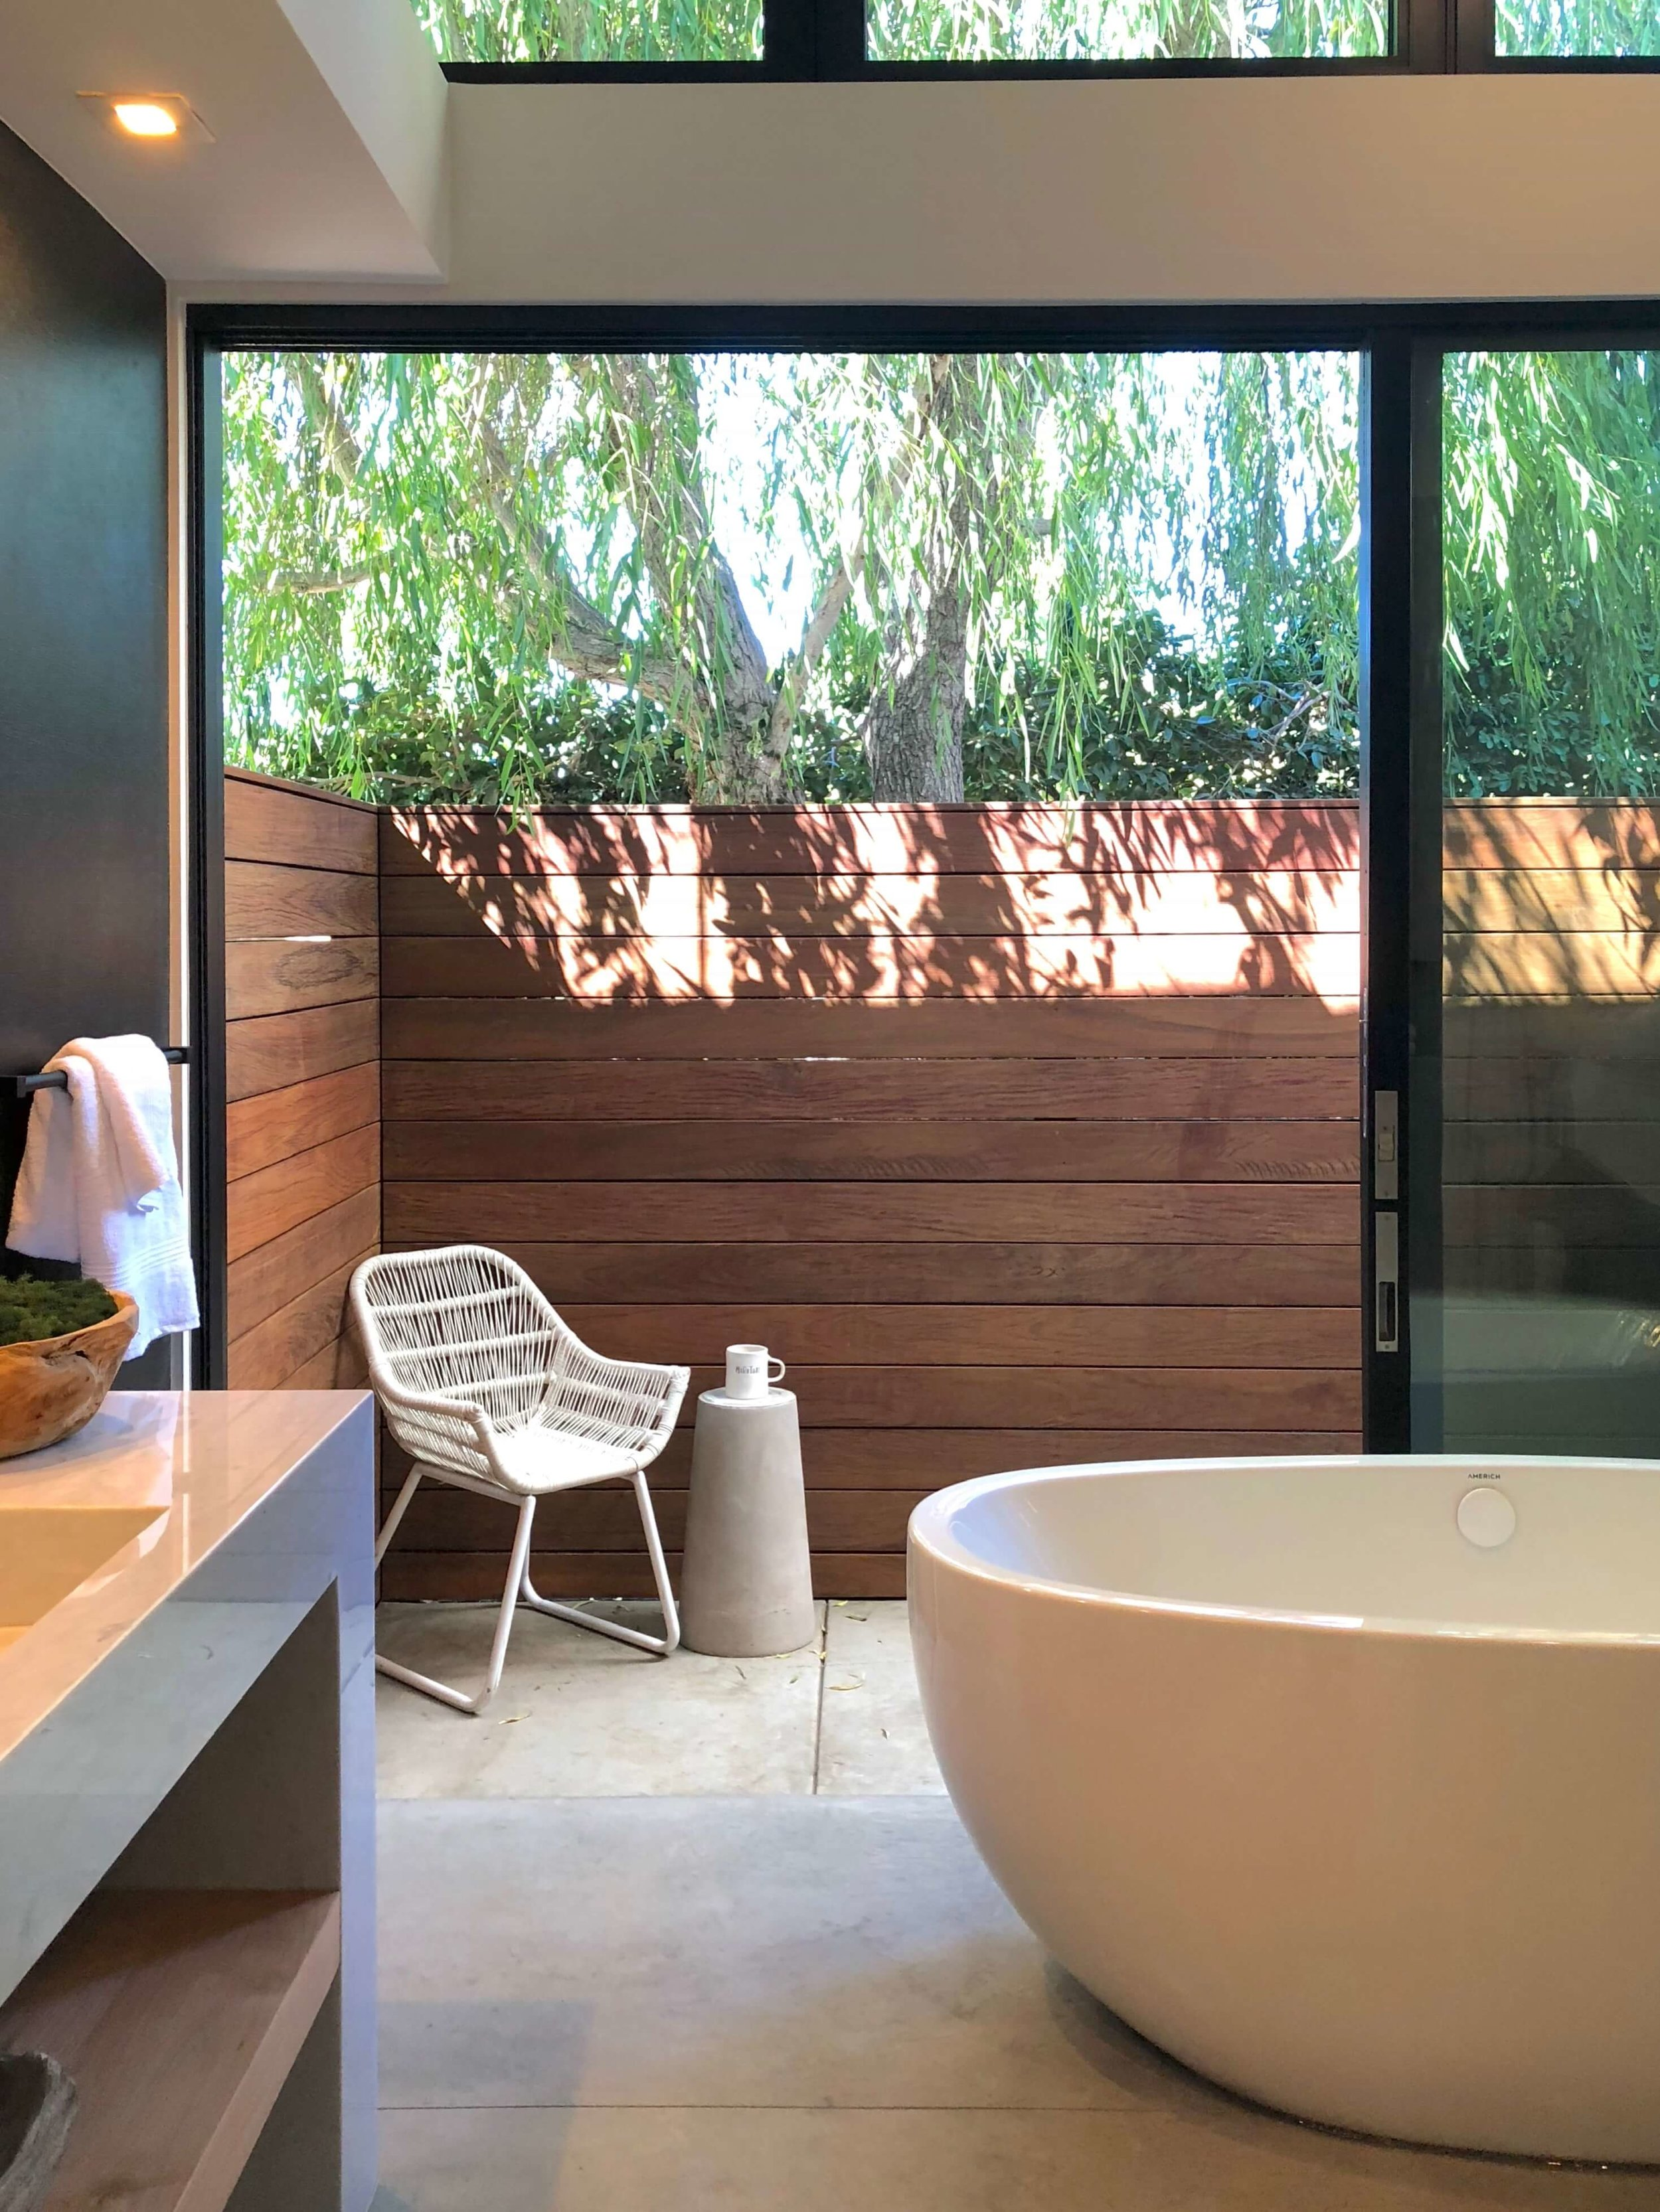 The free standing tub allows access to the patio beyond around it's curves, in this modern bathroom design by Vitus Matare. #tub #freestandingtub #bathroomdesign #bathroomideas